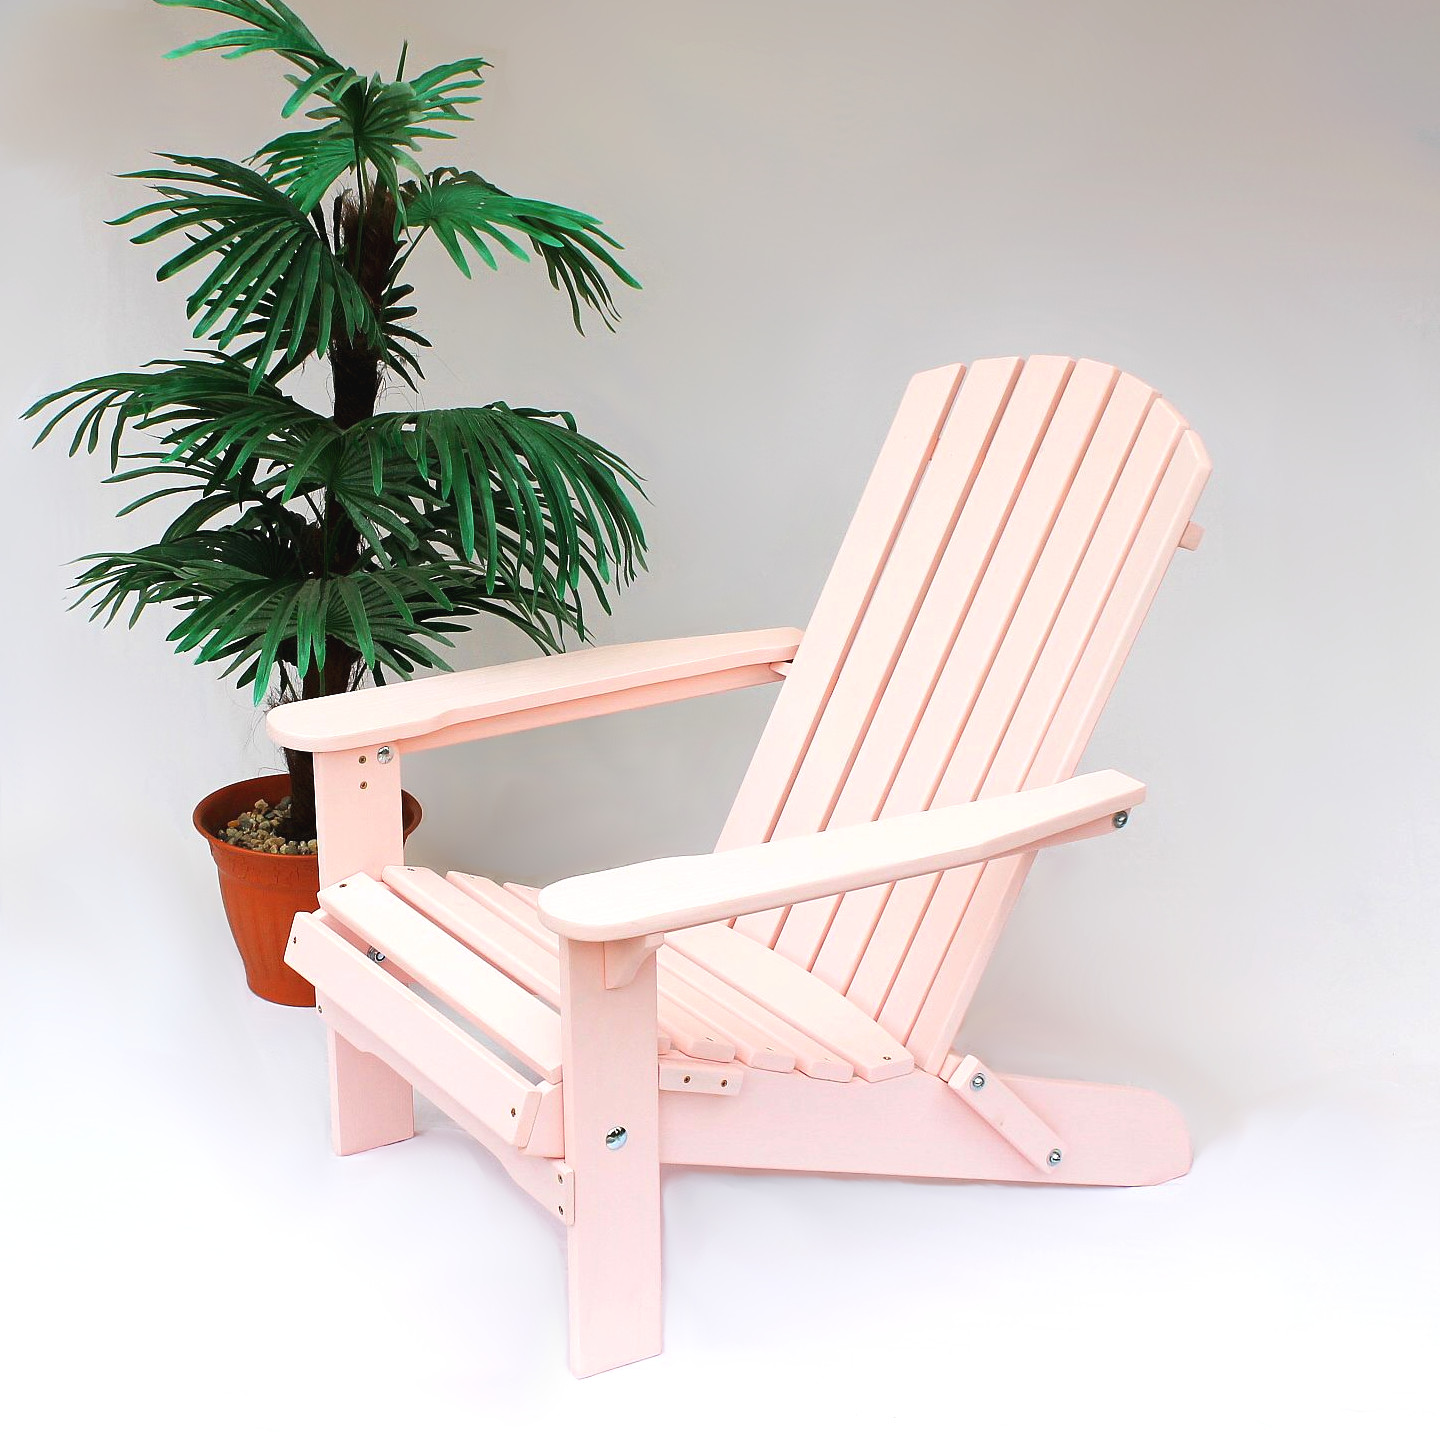 dandibo strandstuhl sonnenstuhl aus holz pink gartenstuhl. Black Bedroom Furniture Sets. Home Design Ideas